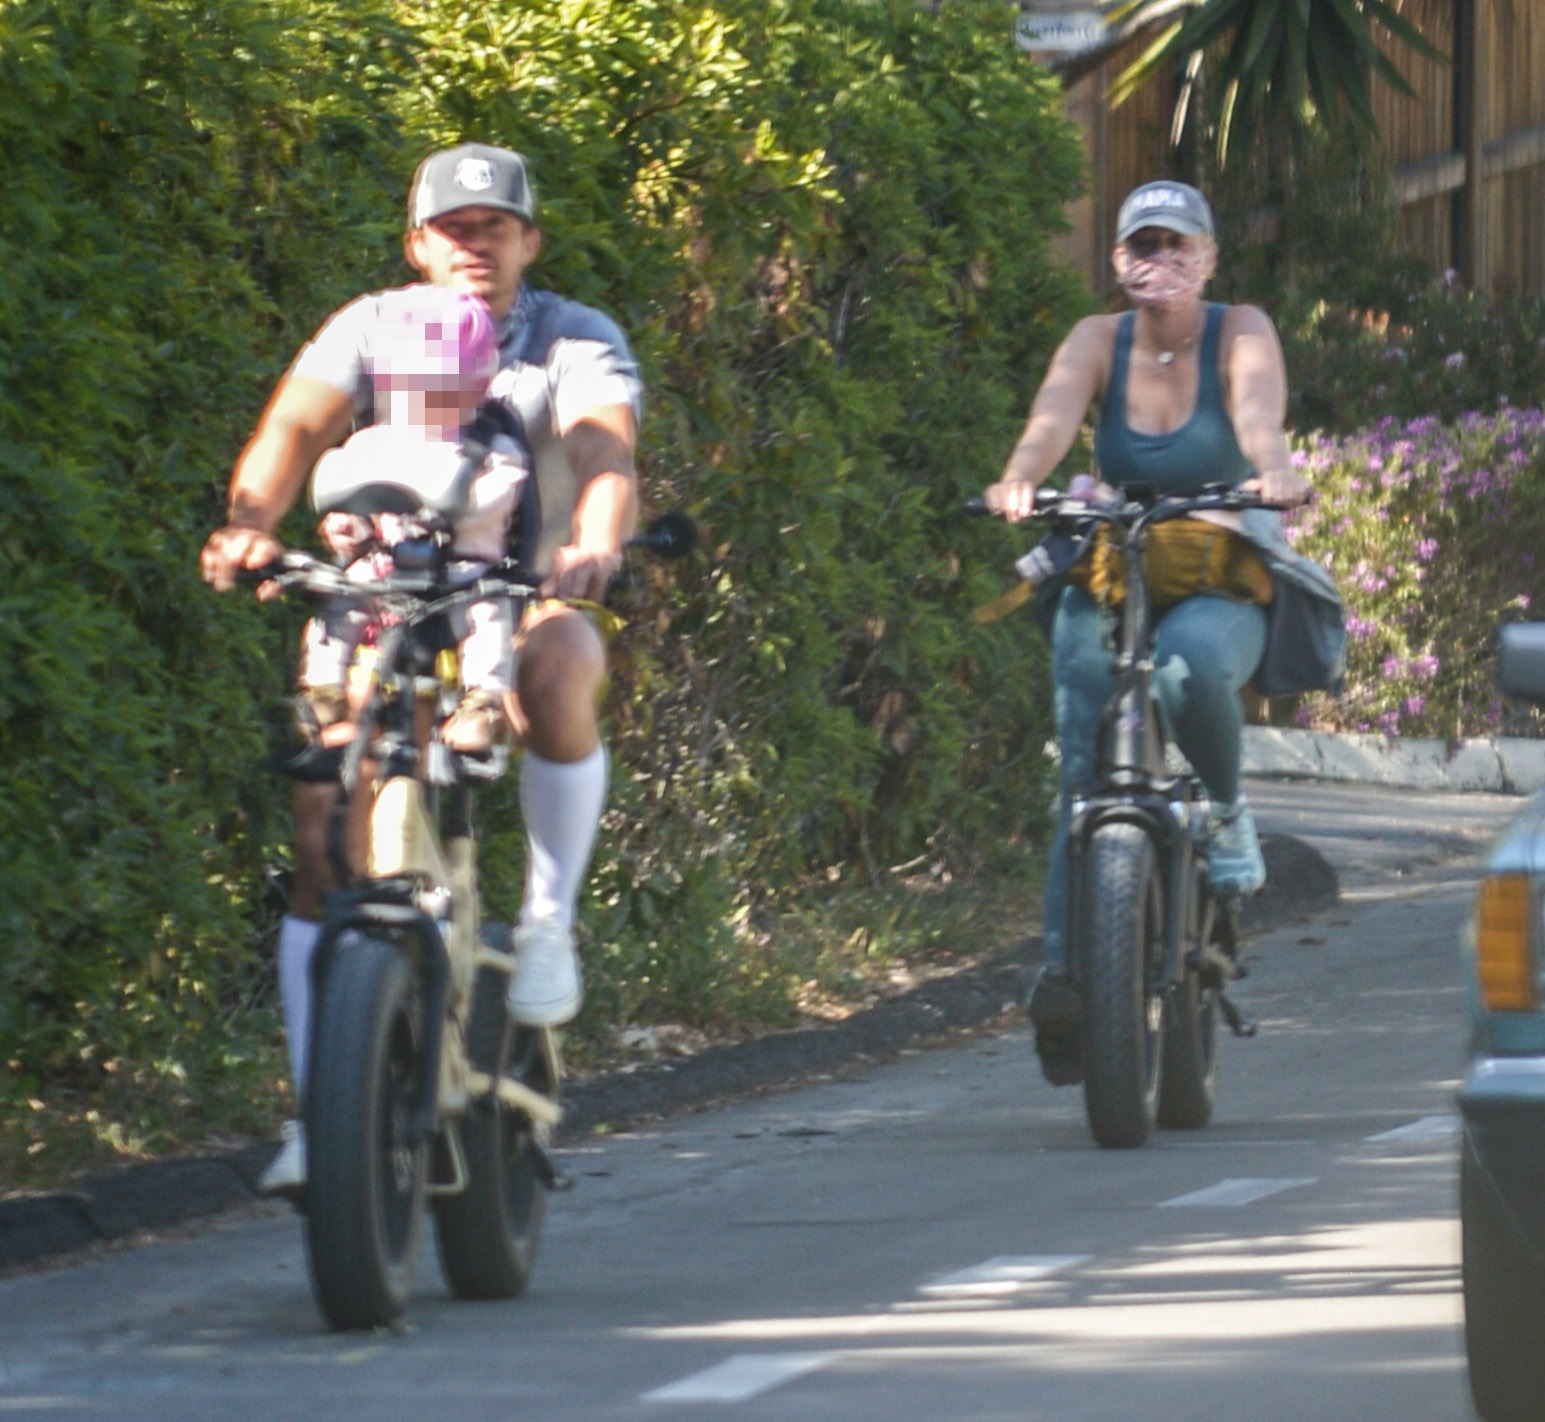 Katy Perry and Orlando Bloom Take Baby Daisy on a Fun Bike Ride in Montecito